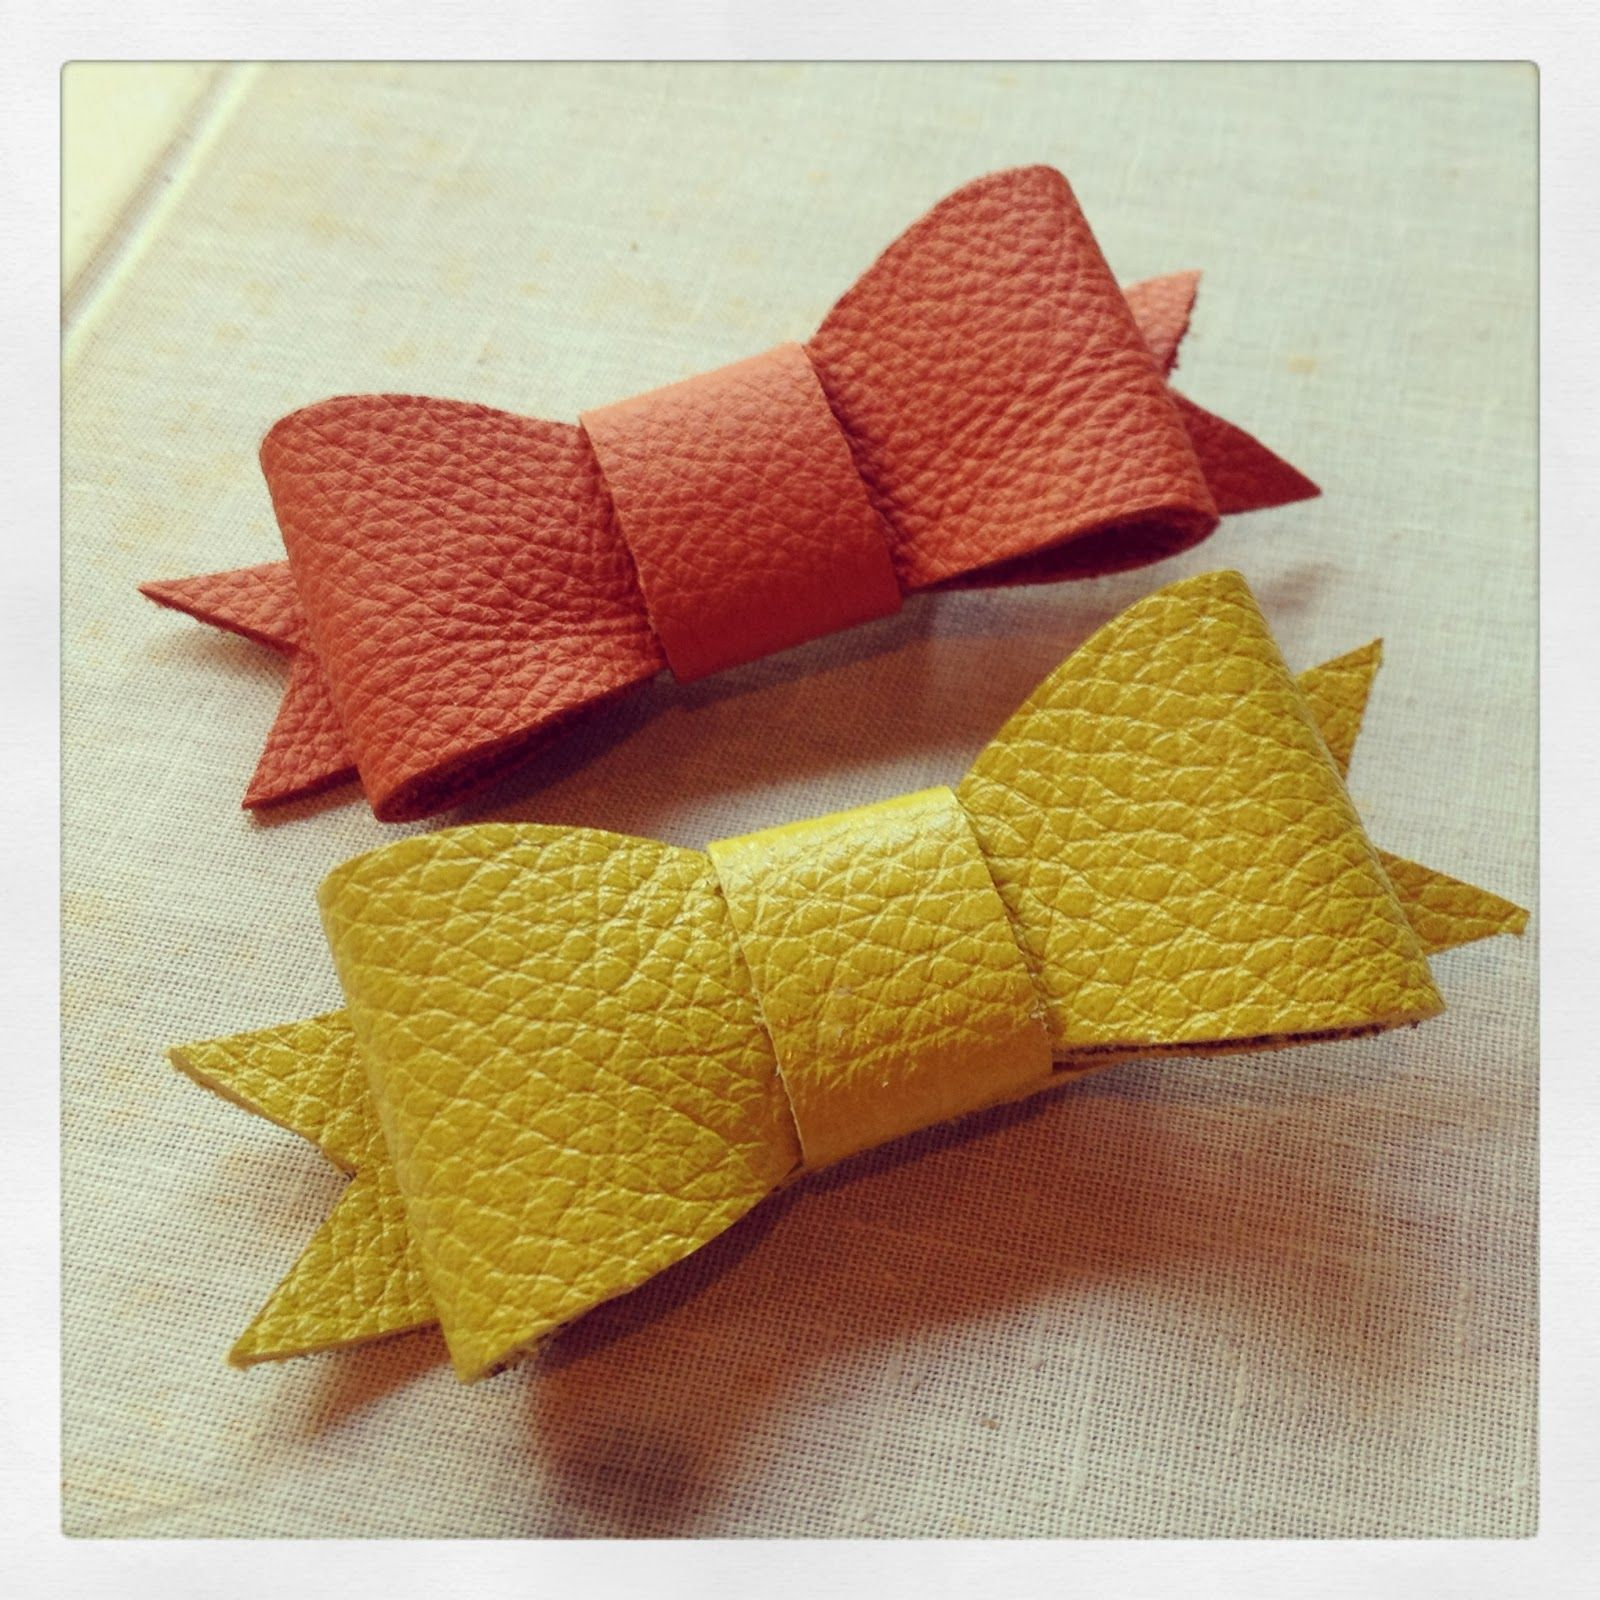 Design by night leather hair bow tutorial kreatv pinterest design by night leather hair bow tutorial baditri Image collections